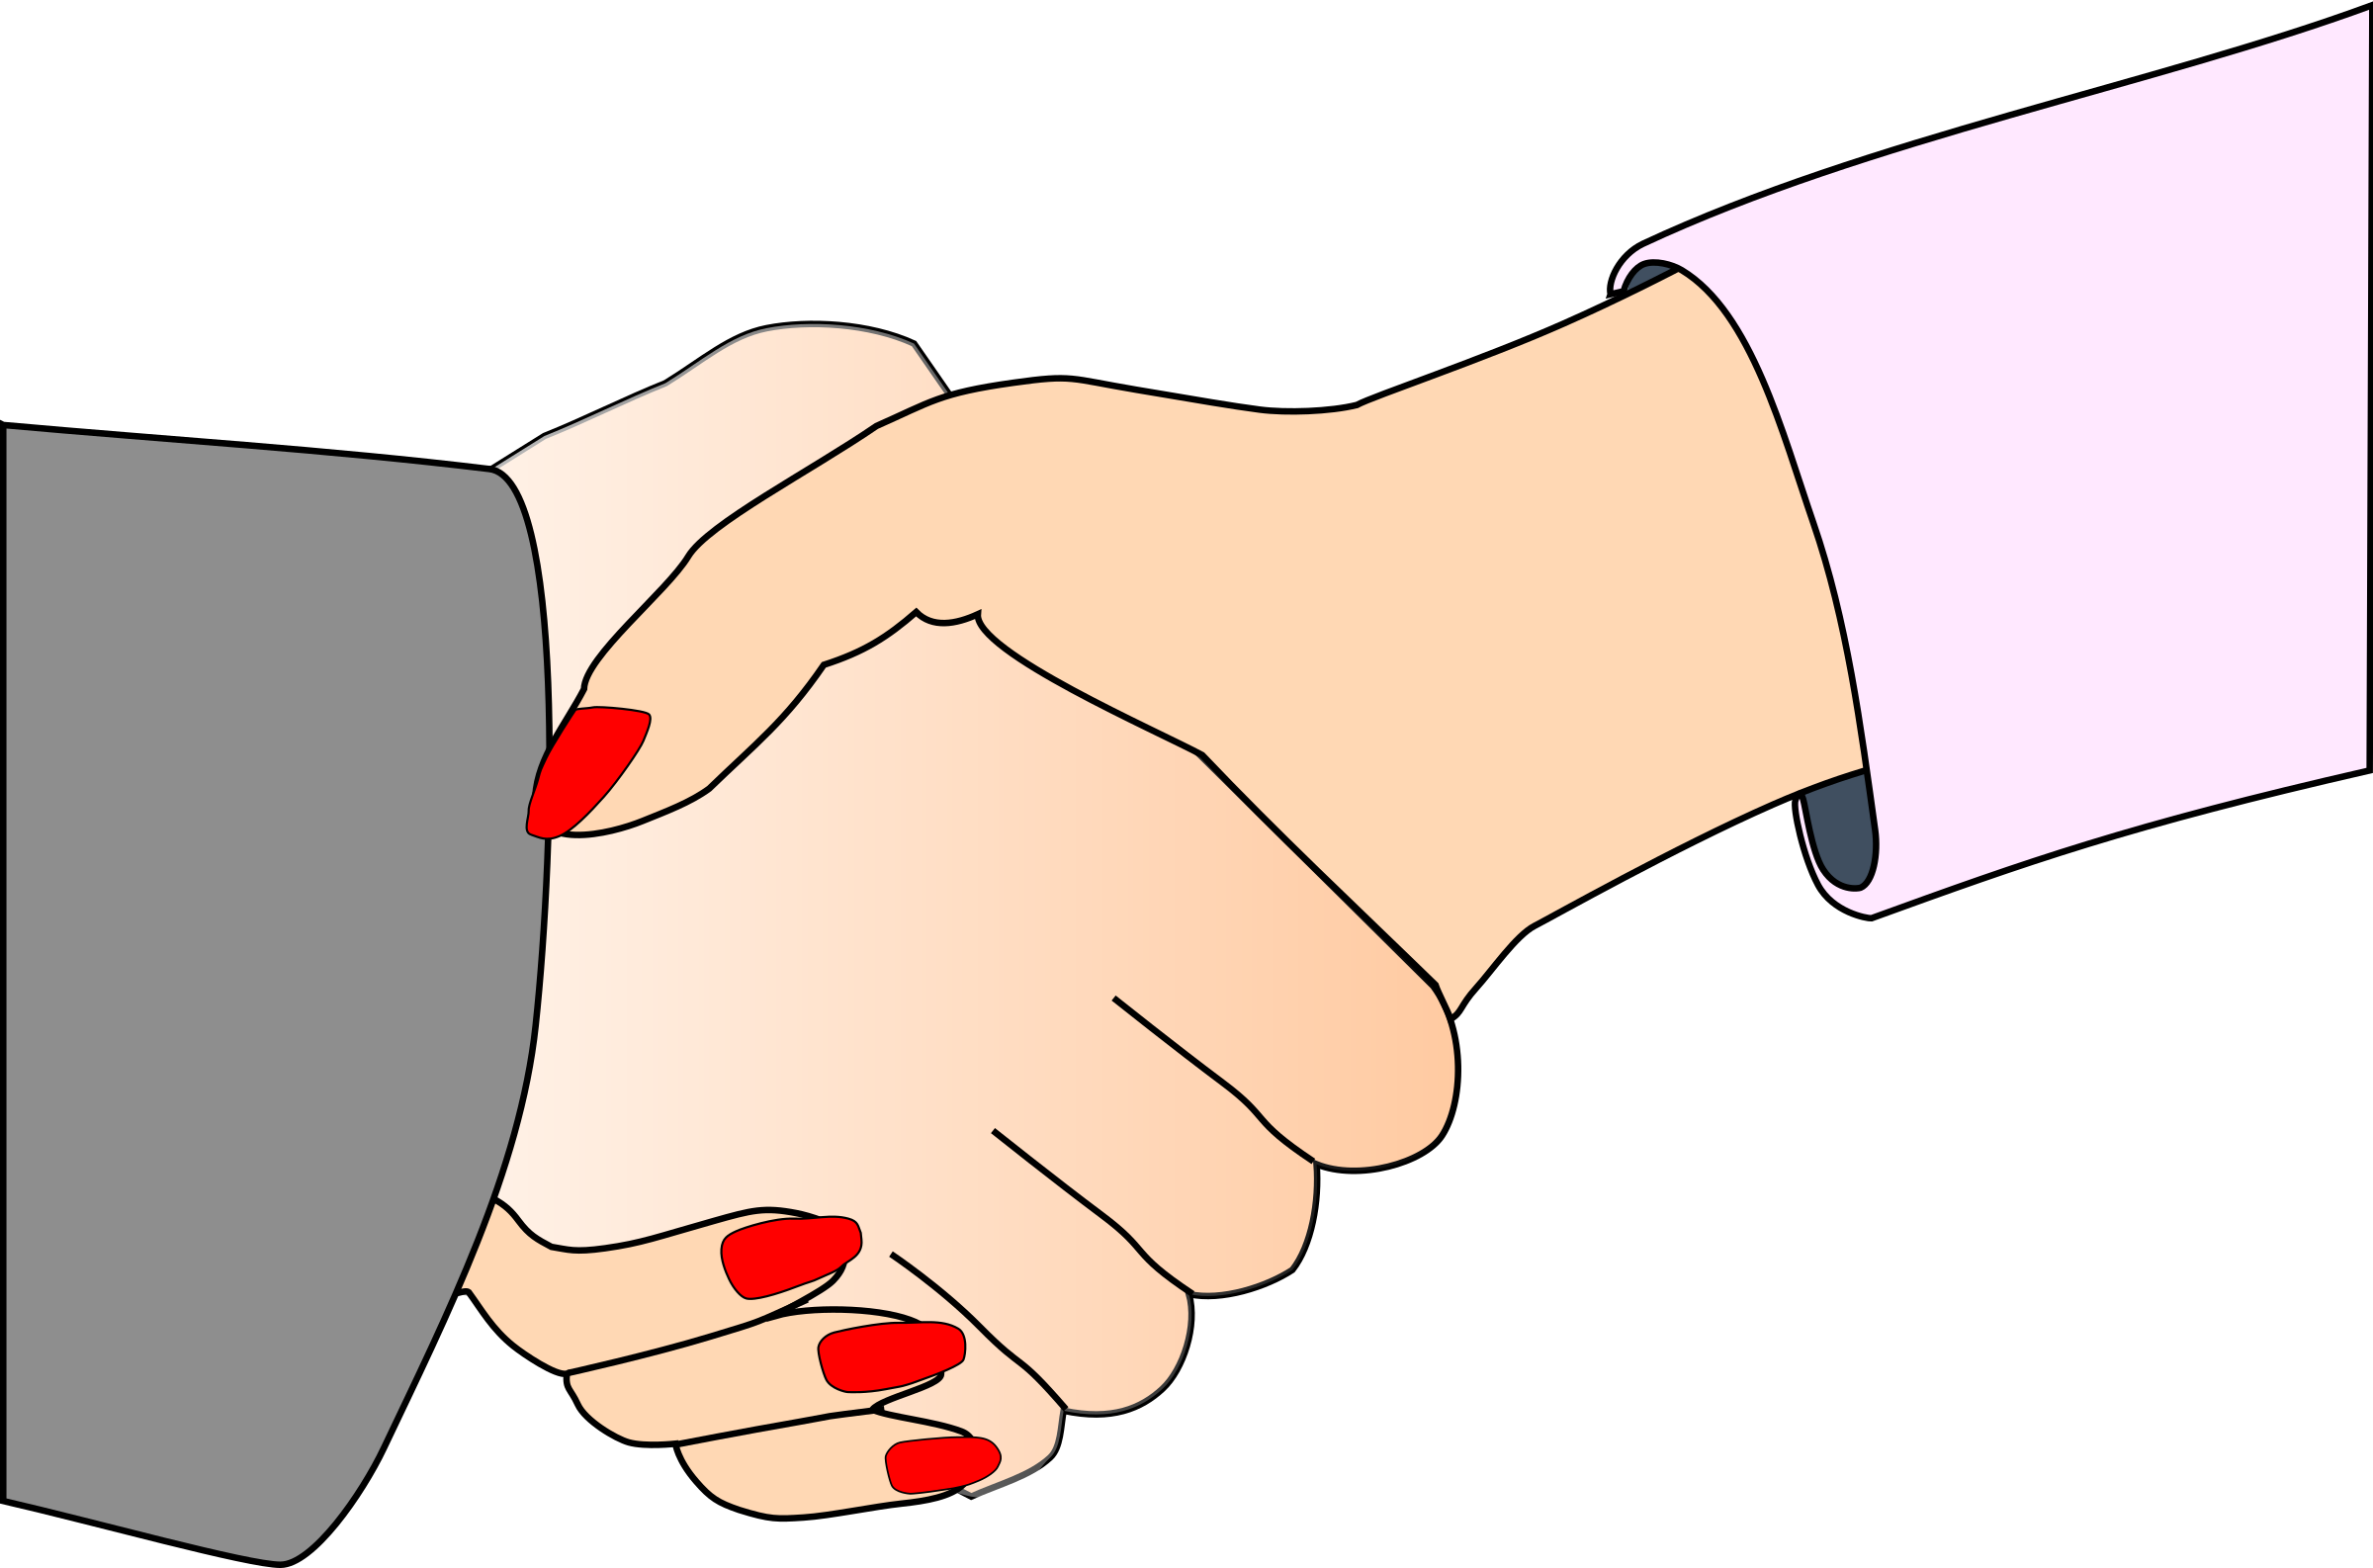 Handshake with Black Outline (white man and woman) by palomaironique